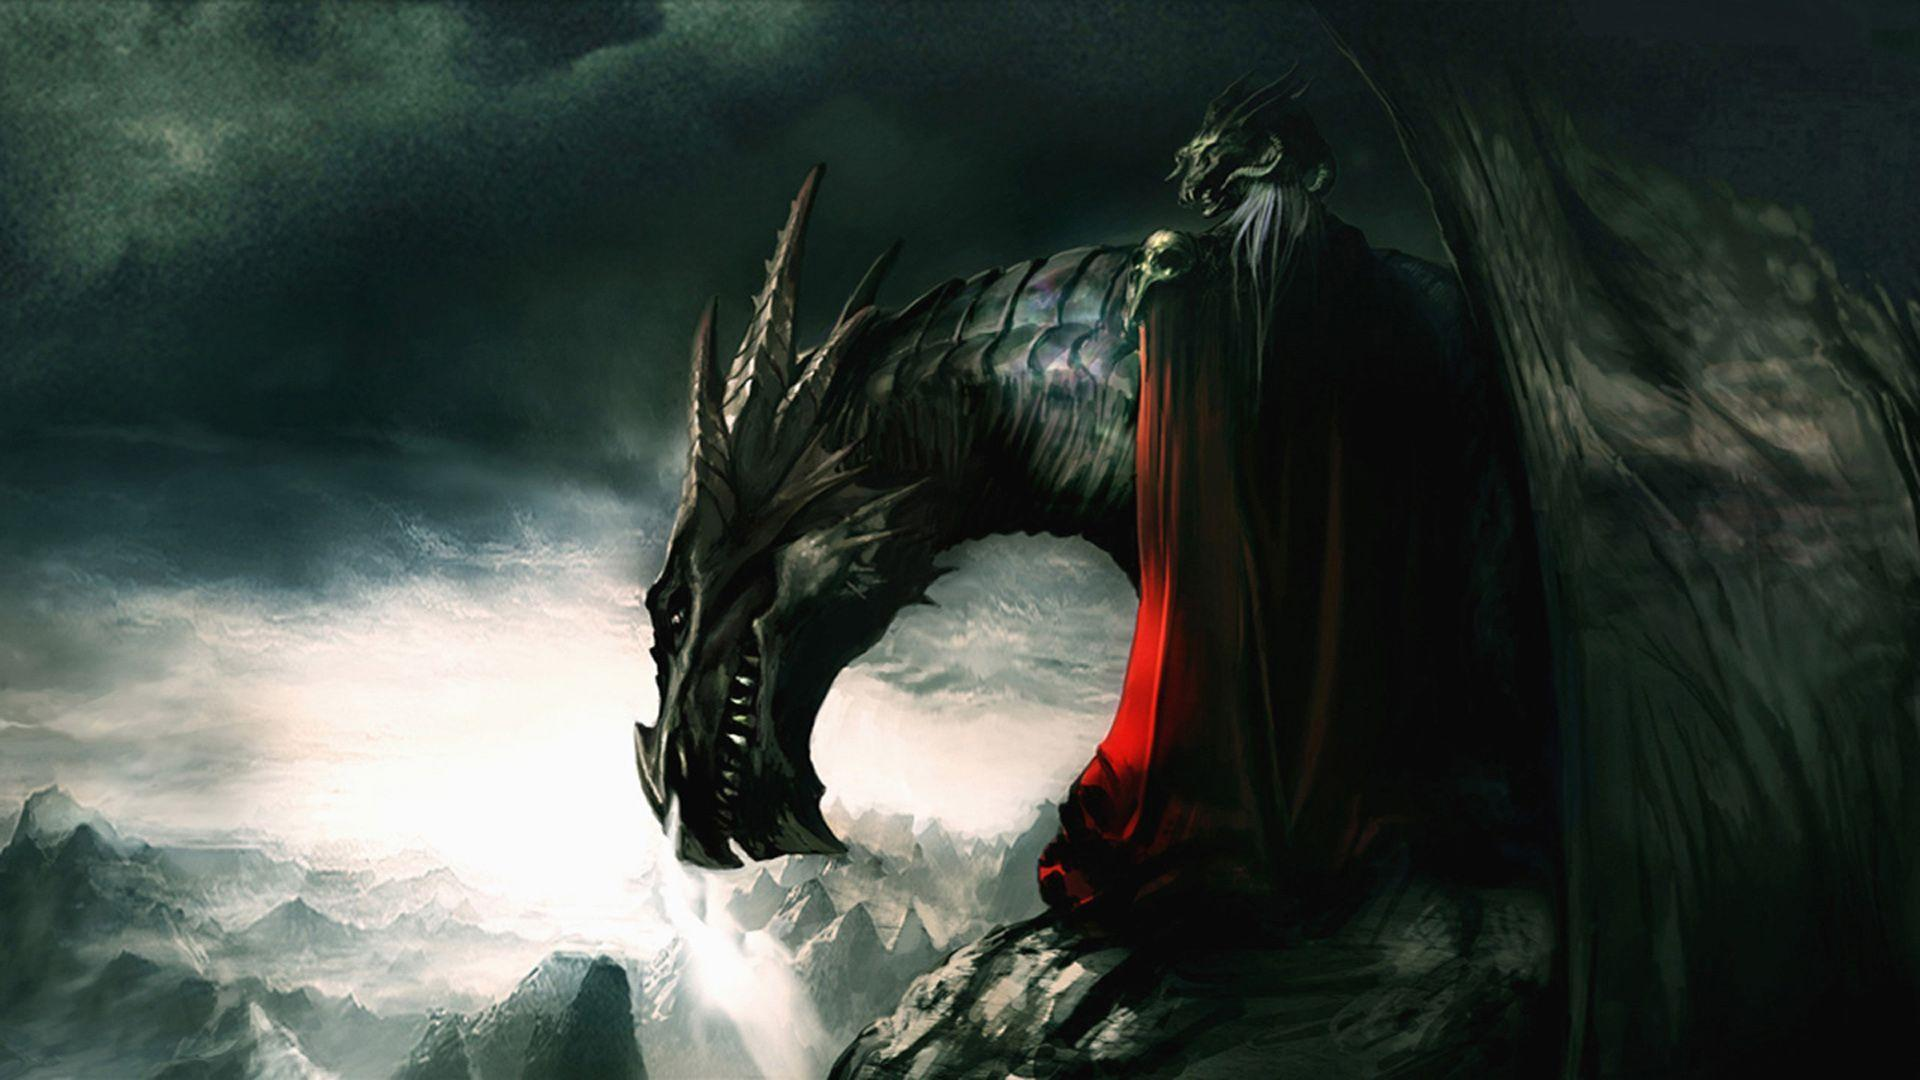 dragon wallpaper widescreen high resolution - photo #26